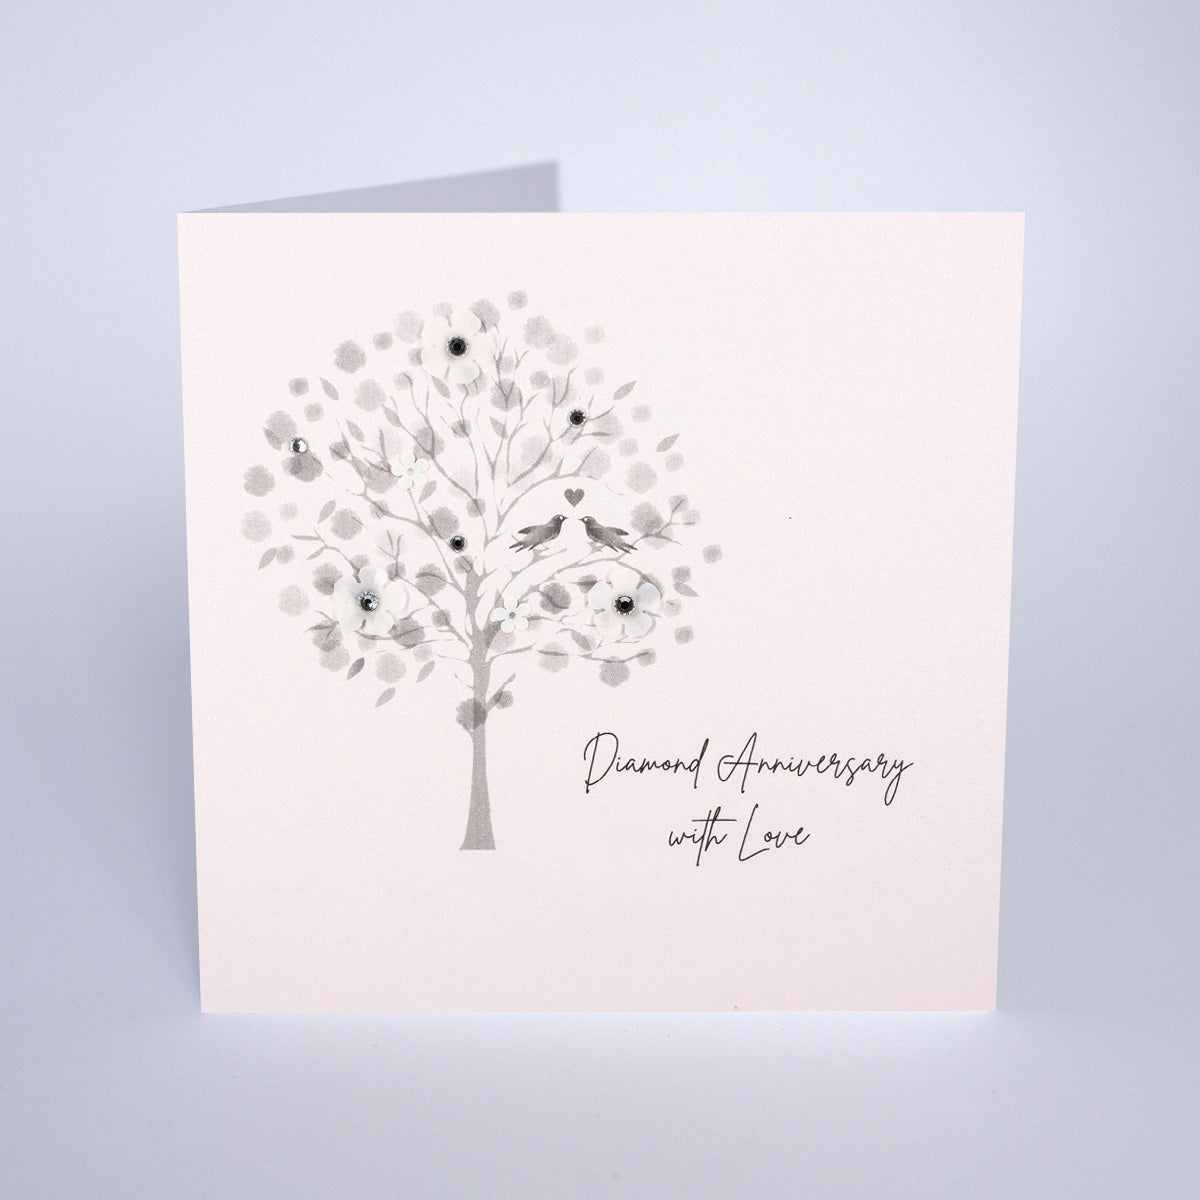 Diamond Anniversary (Tree)